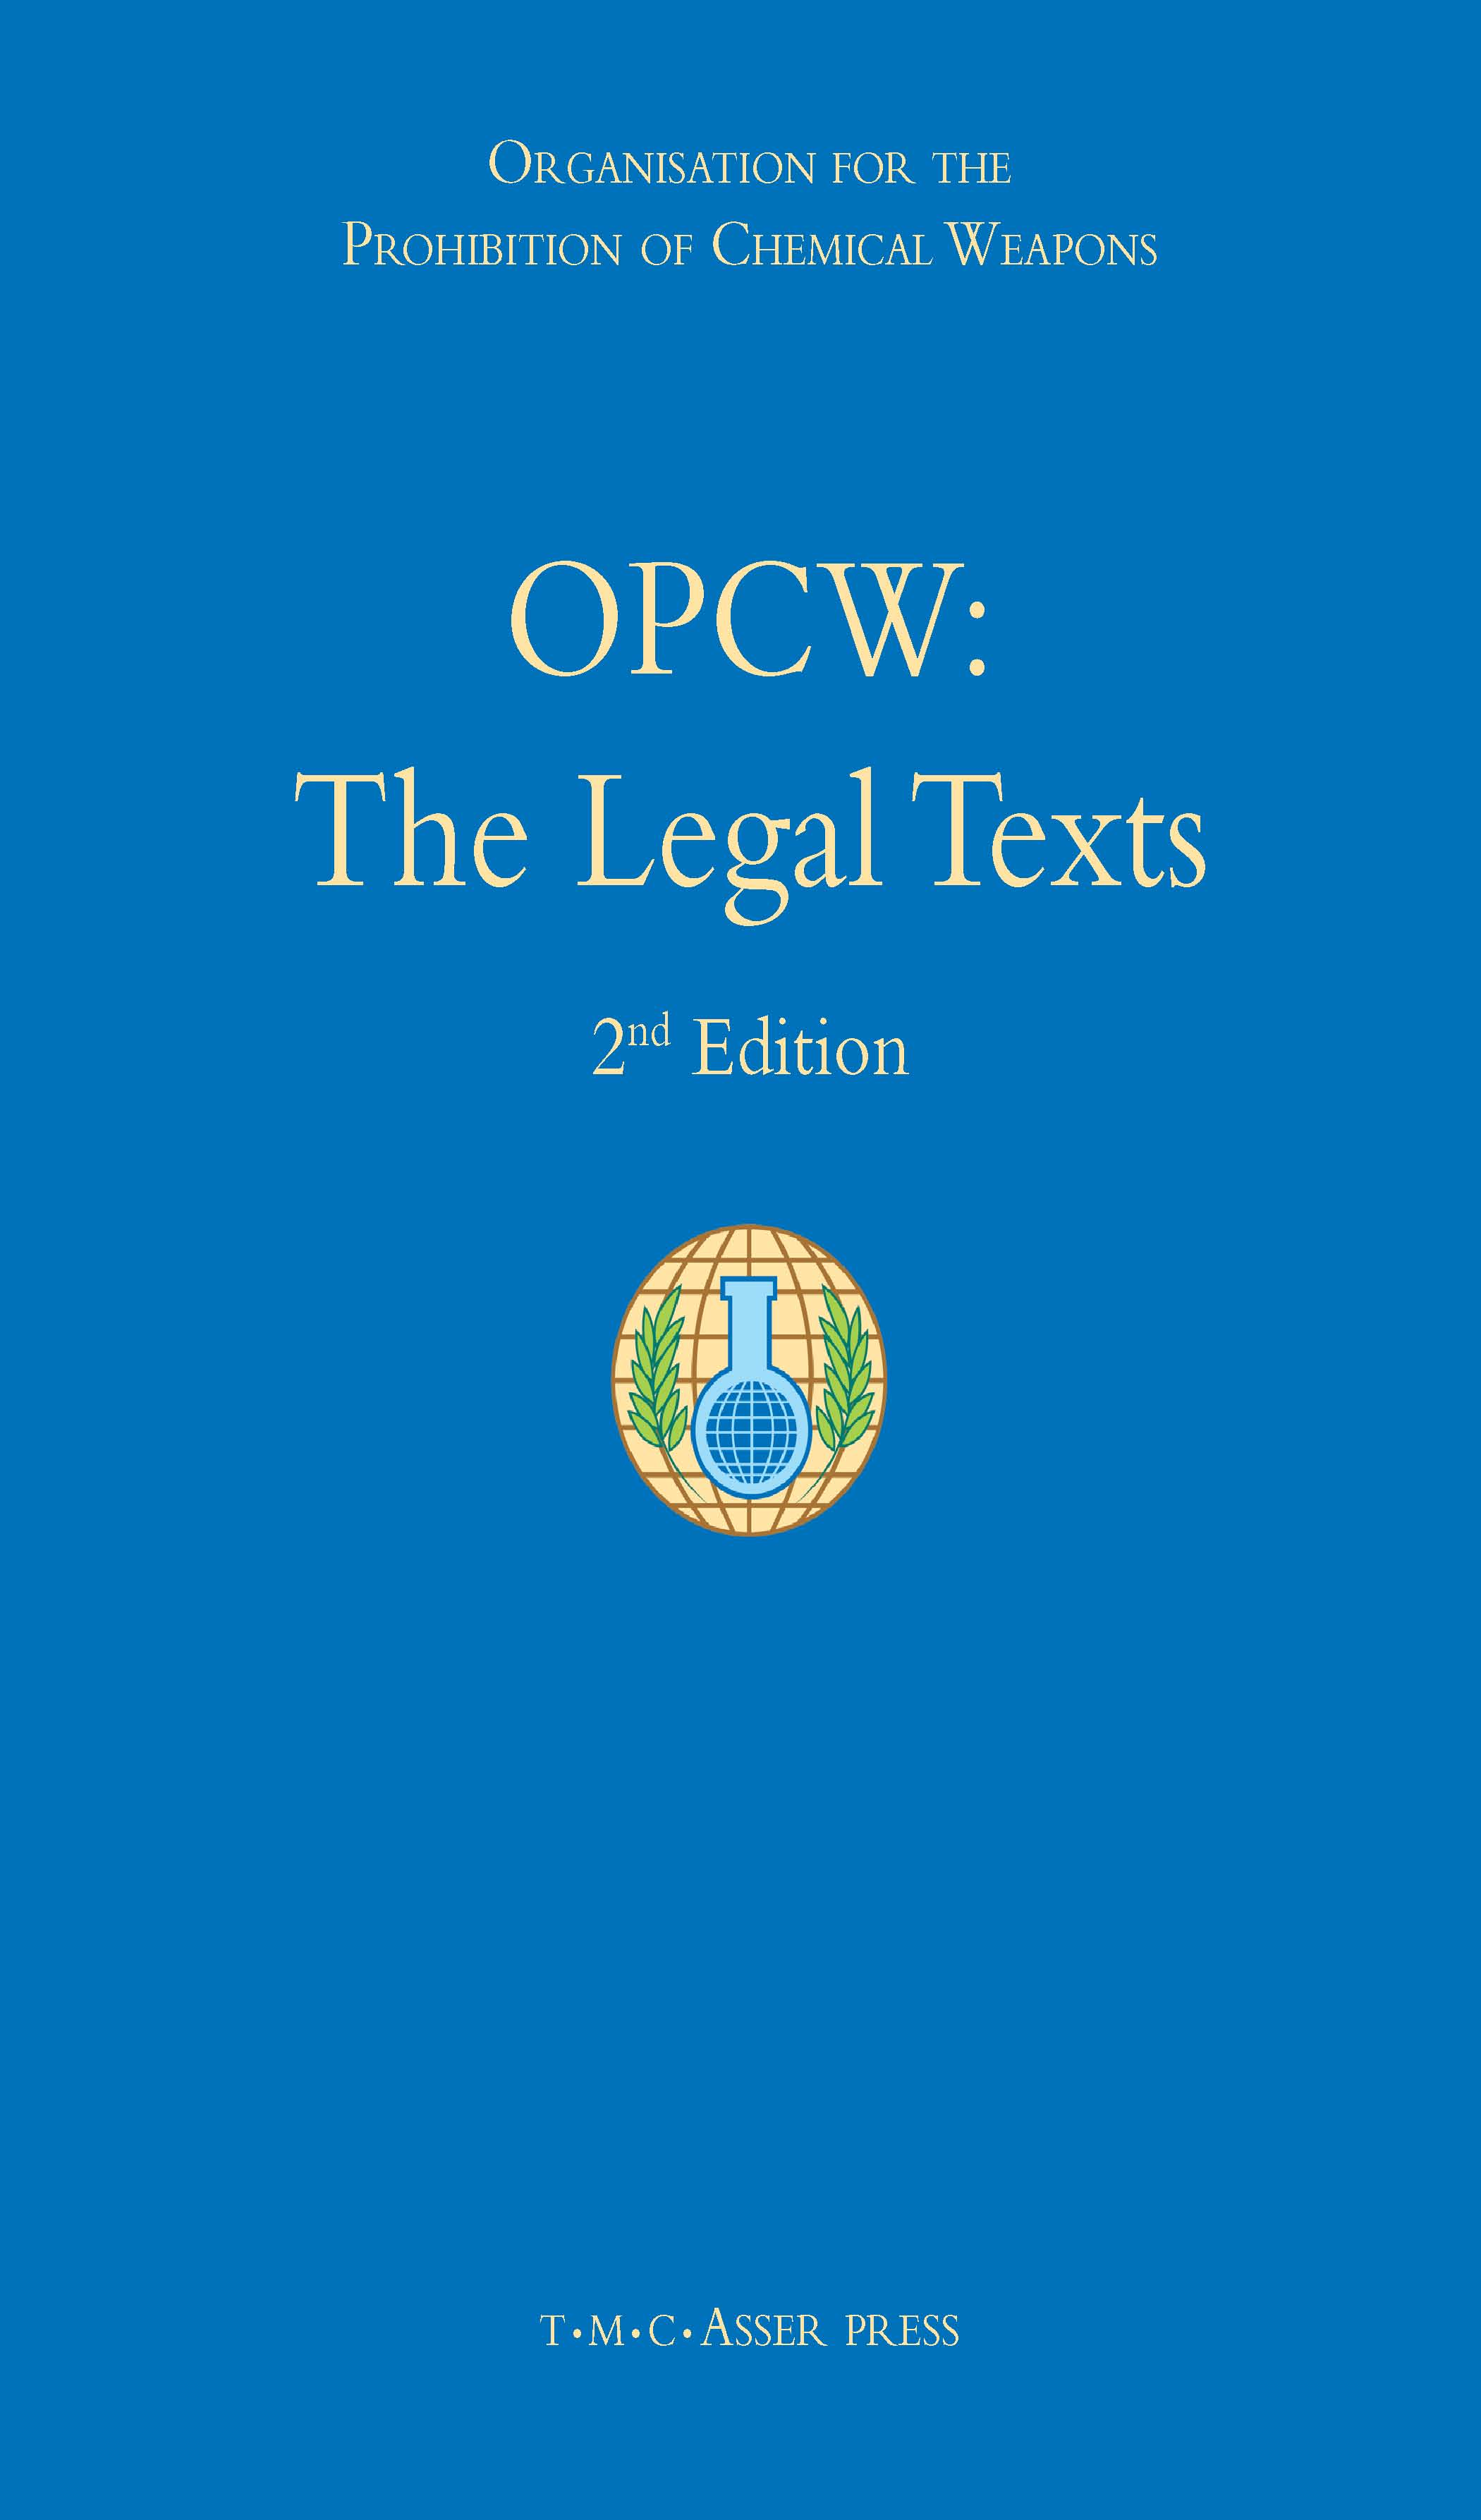 OPCW 2nd frontcover